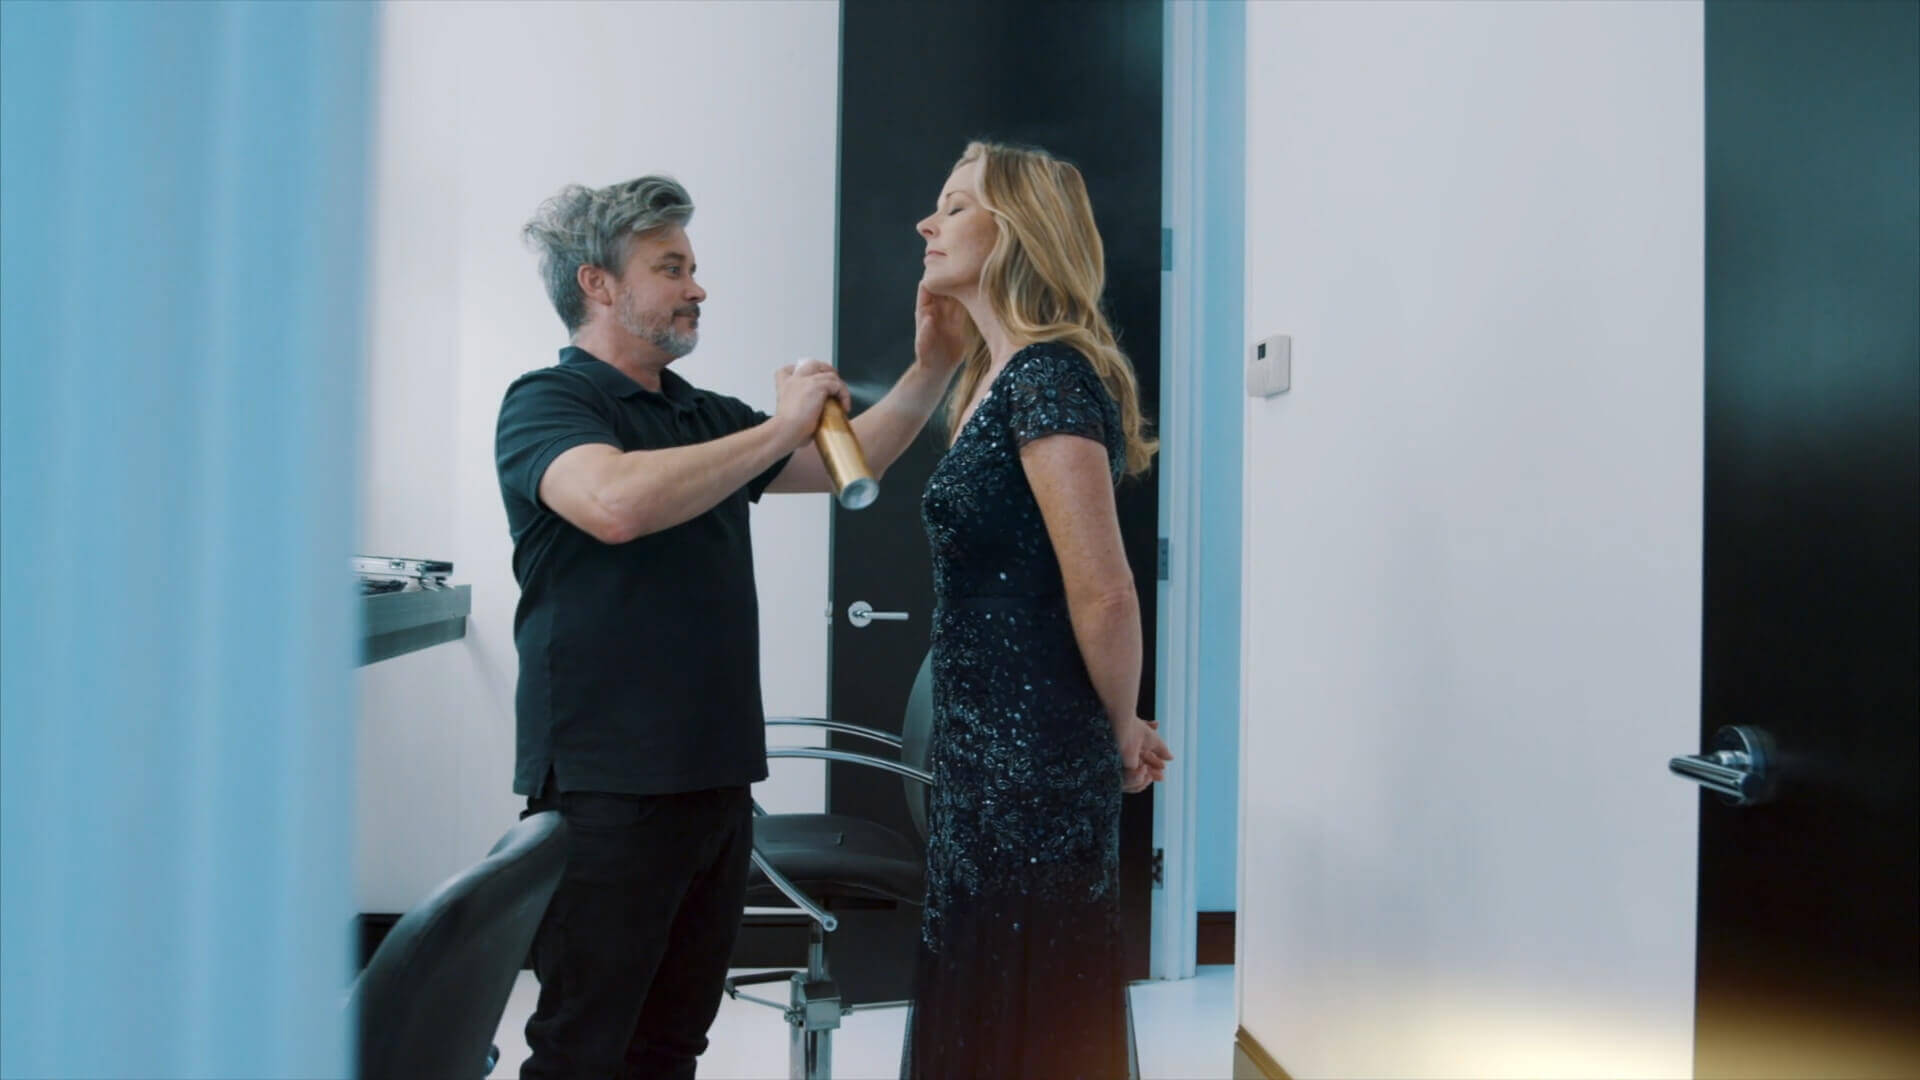 Ultherapy-Branding--GCGMarketing-Relaunch-Video-Poster